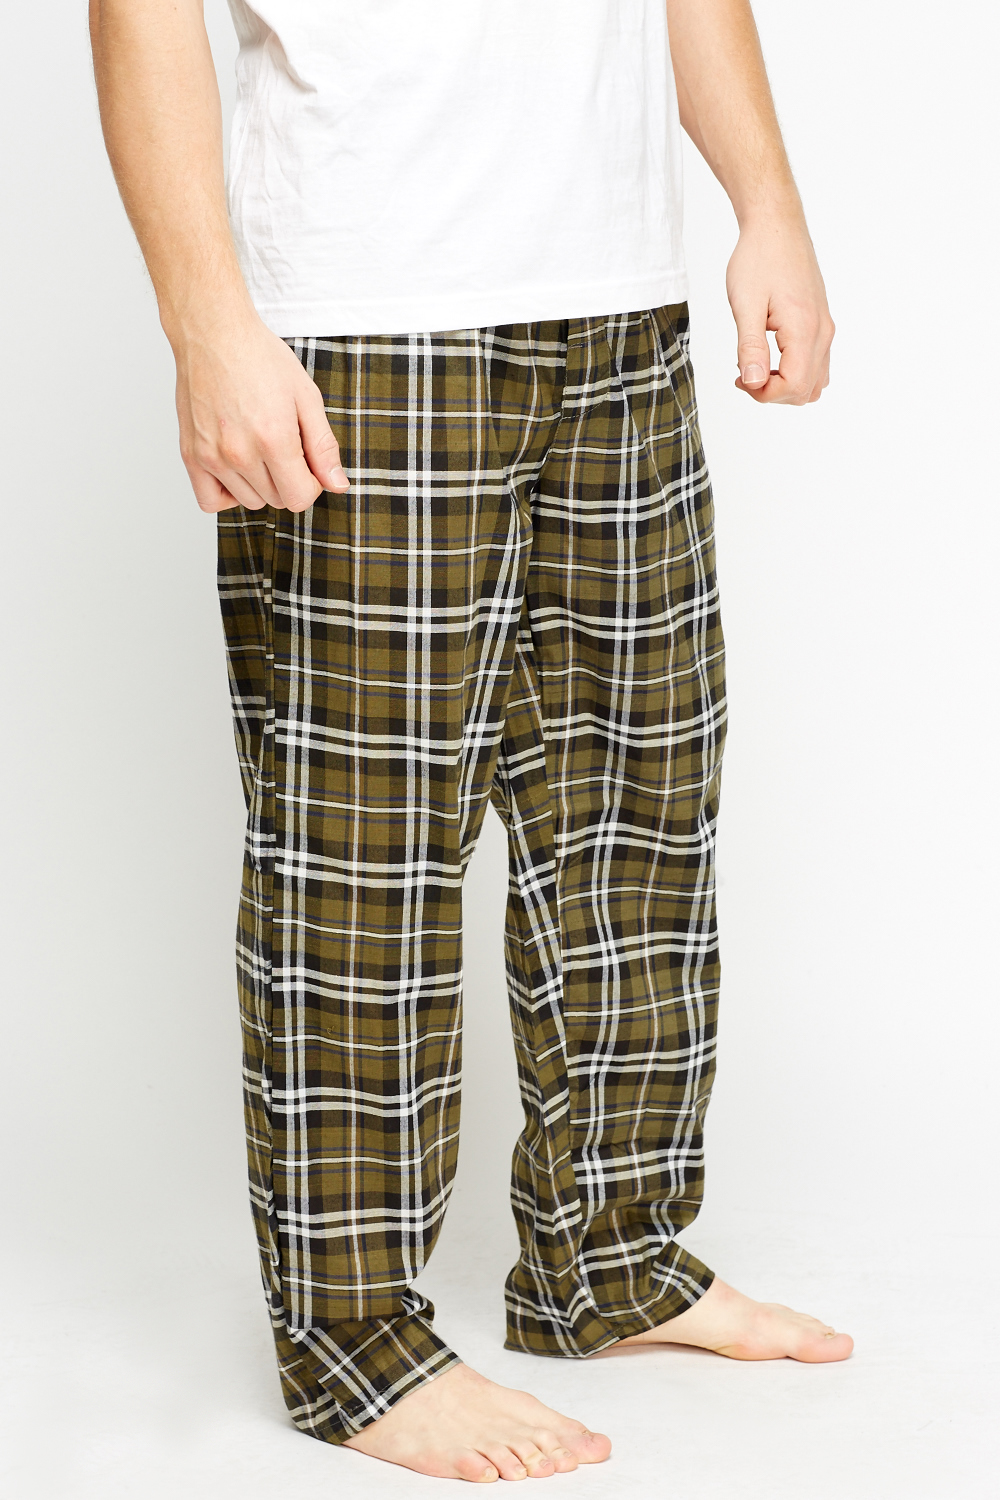 Men's nightwear Pyjamas - Next Australia. International Shipping And Returns Available. Buy Now! Click here to use our website with more accessibility support, for example screen readers Black/Grey Jersey Cuffed Long Bottoms Two Pack. $ Black/Grey Check Cosy Long Set. $ Navy Need Sleep Jersey Long Set. $